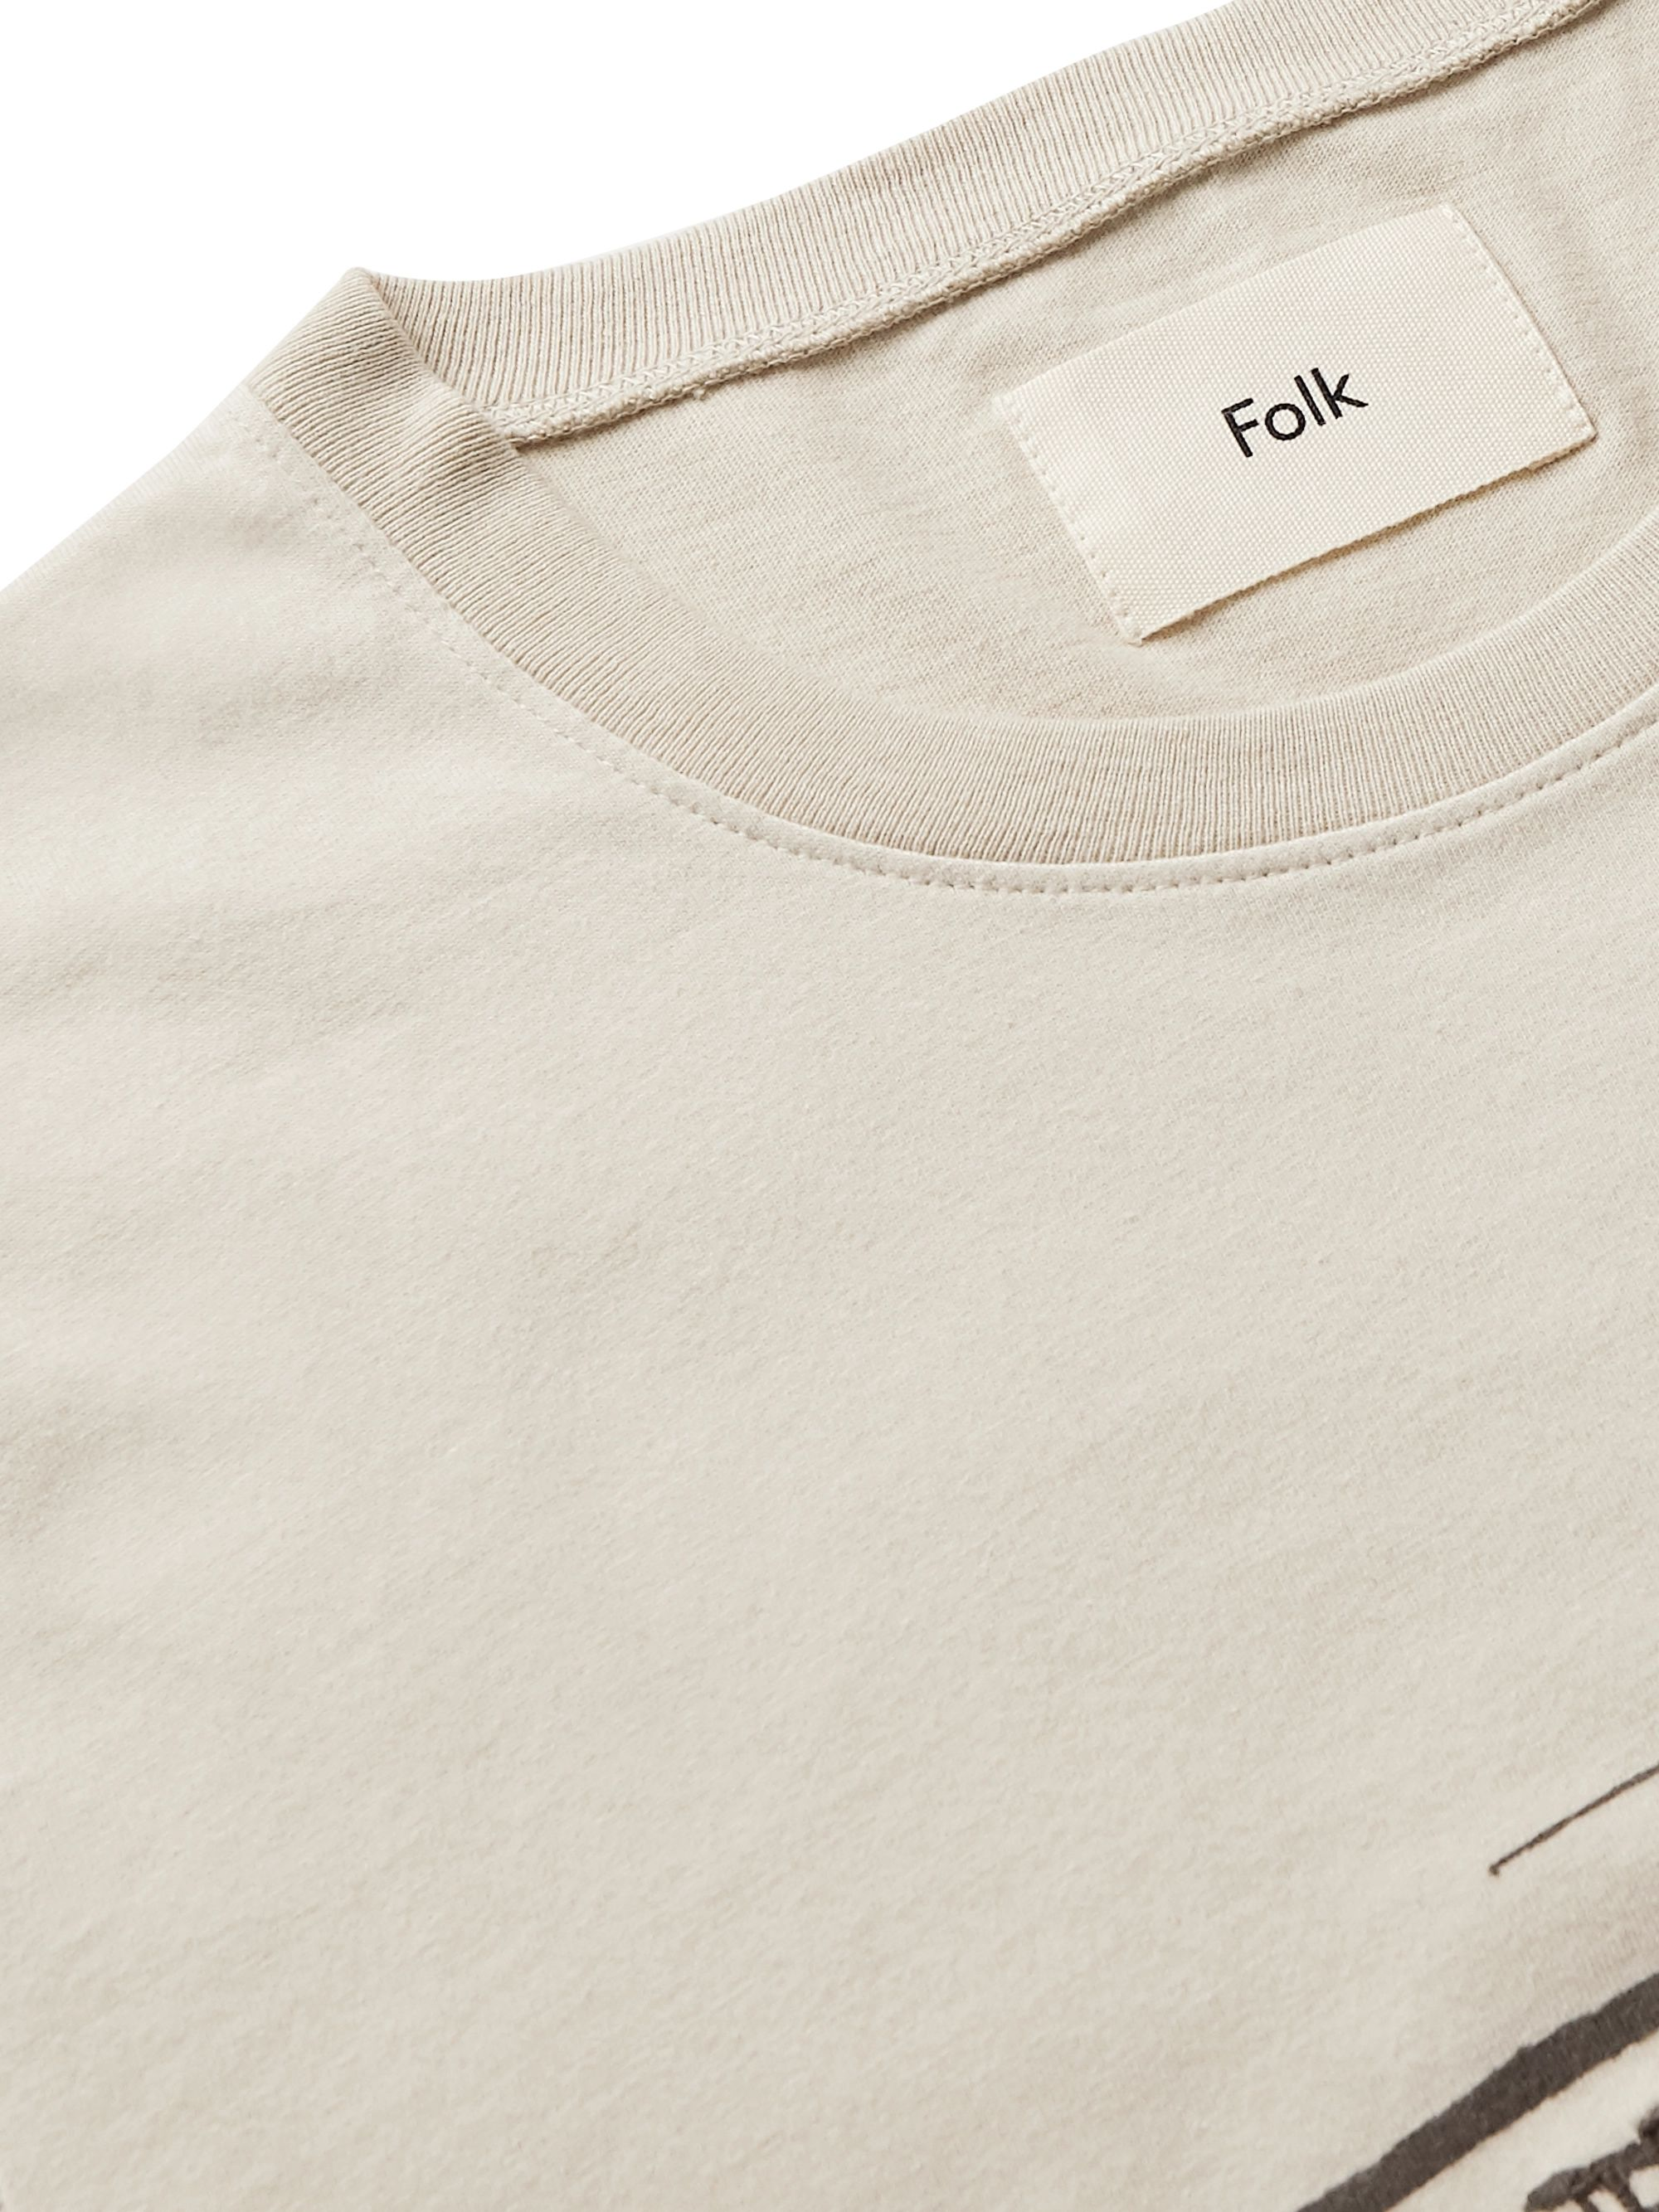 Folk Printed Embroidered Cotton-Jersey T-Shirt